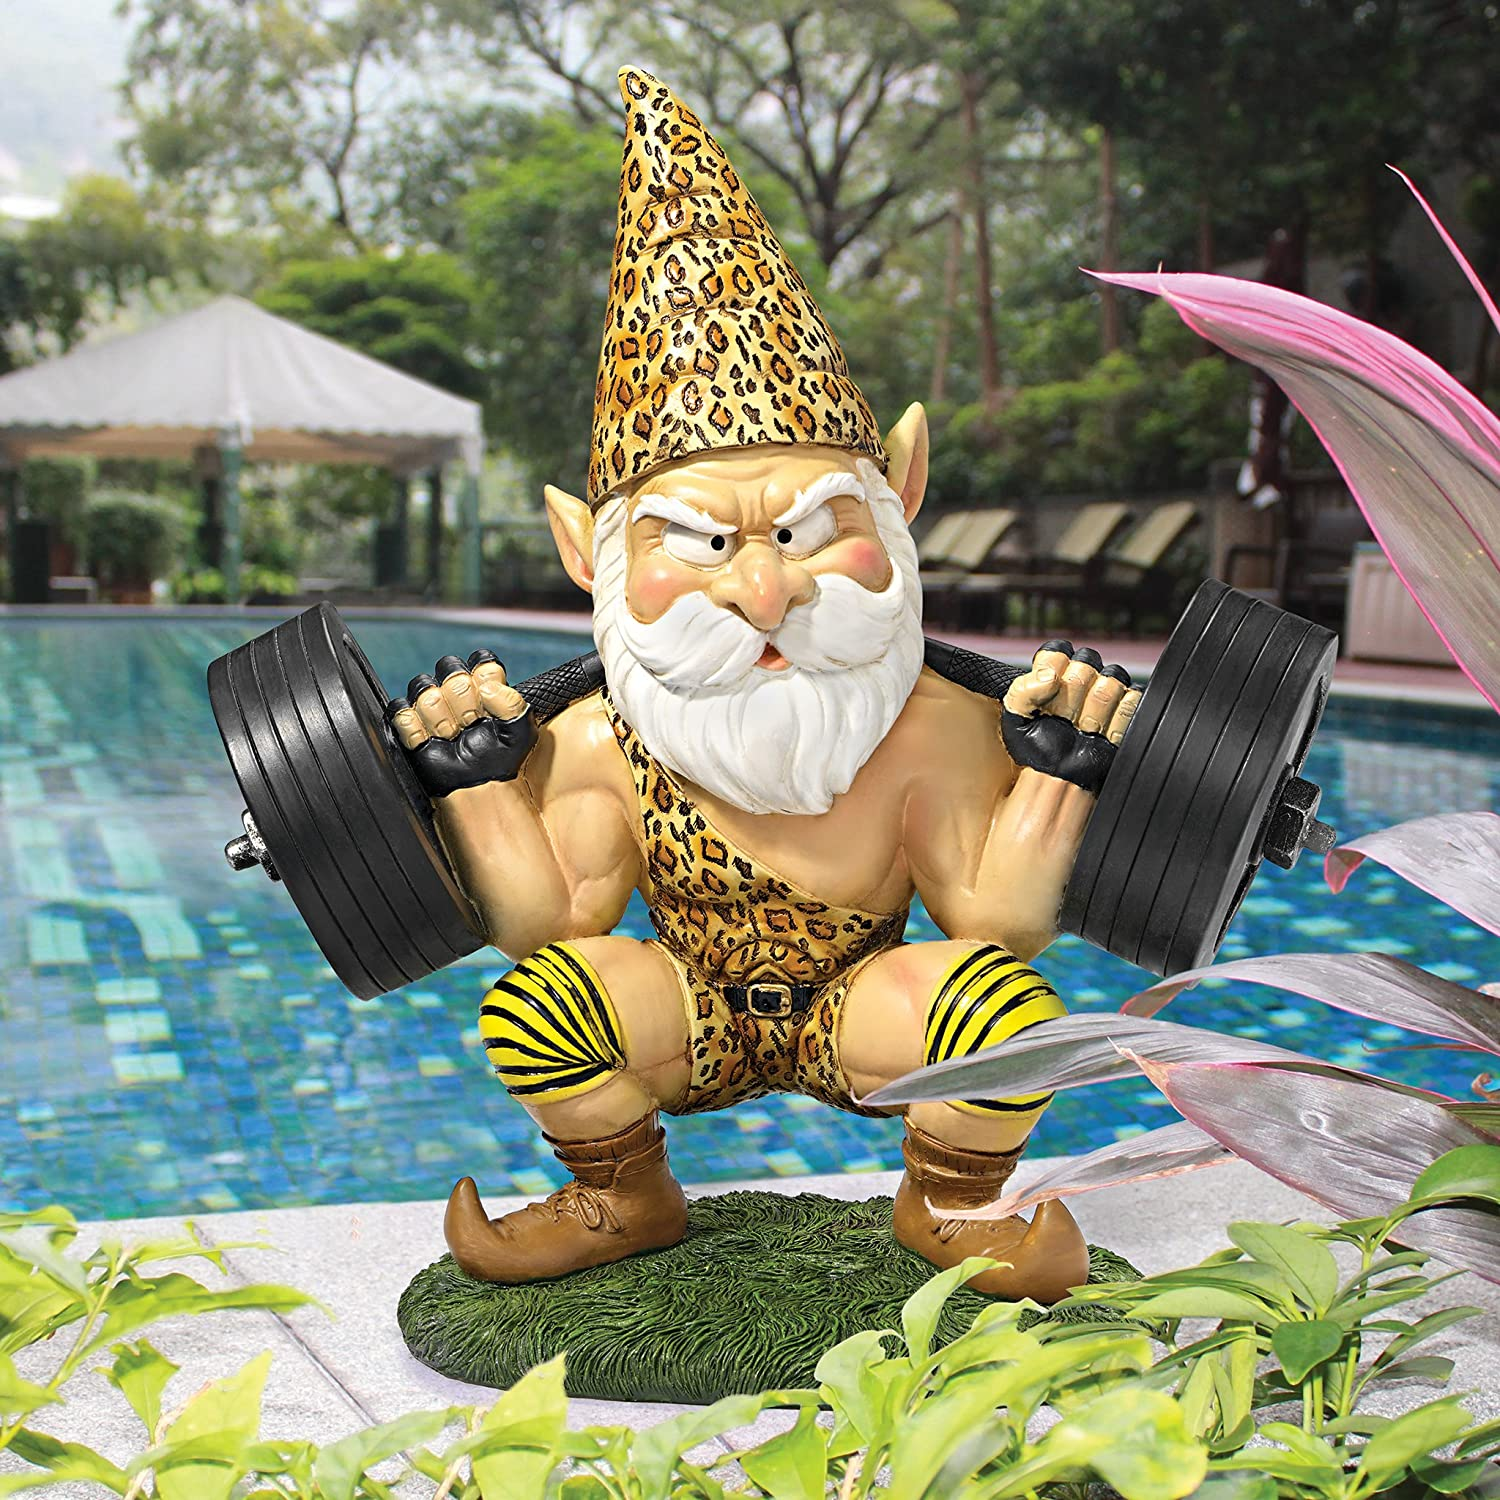 Amazon.com : Garden Gnome Statue   Atlas The Athletic Weightlifting Gnome   Outdoor  Garden Gnomes   Funny Lawn Gnome Statues : Patio, Lawn U0026 Garden